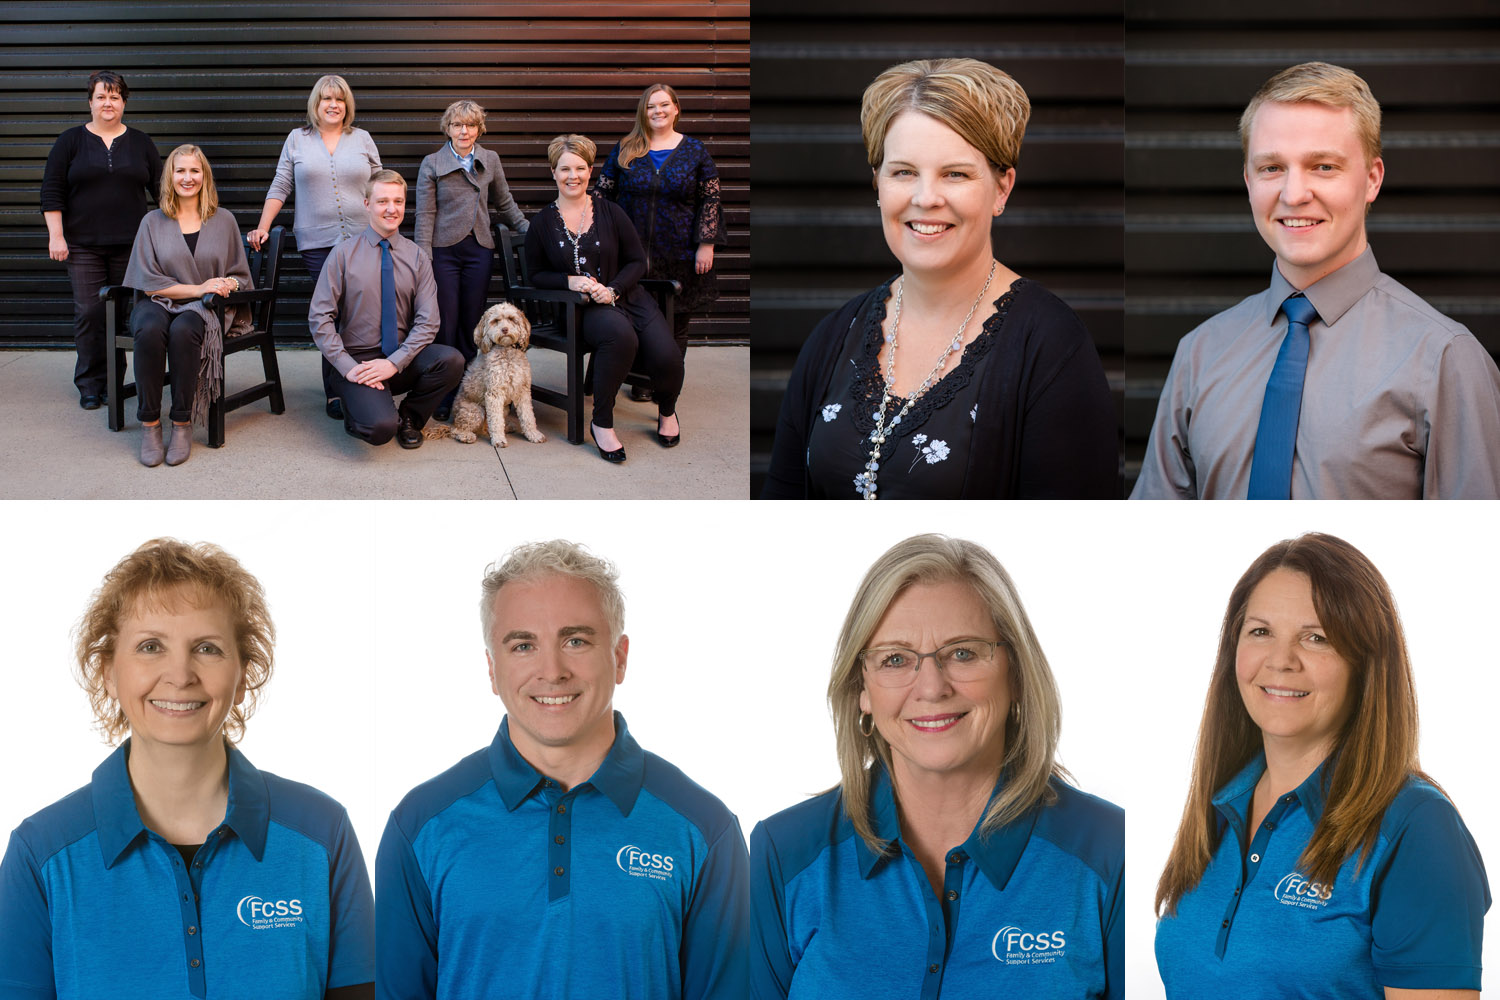 Lethbridge staff headshot samples